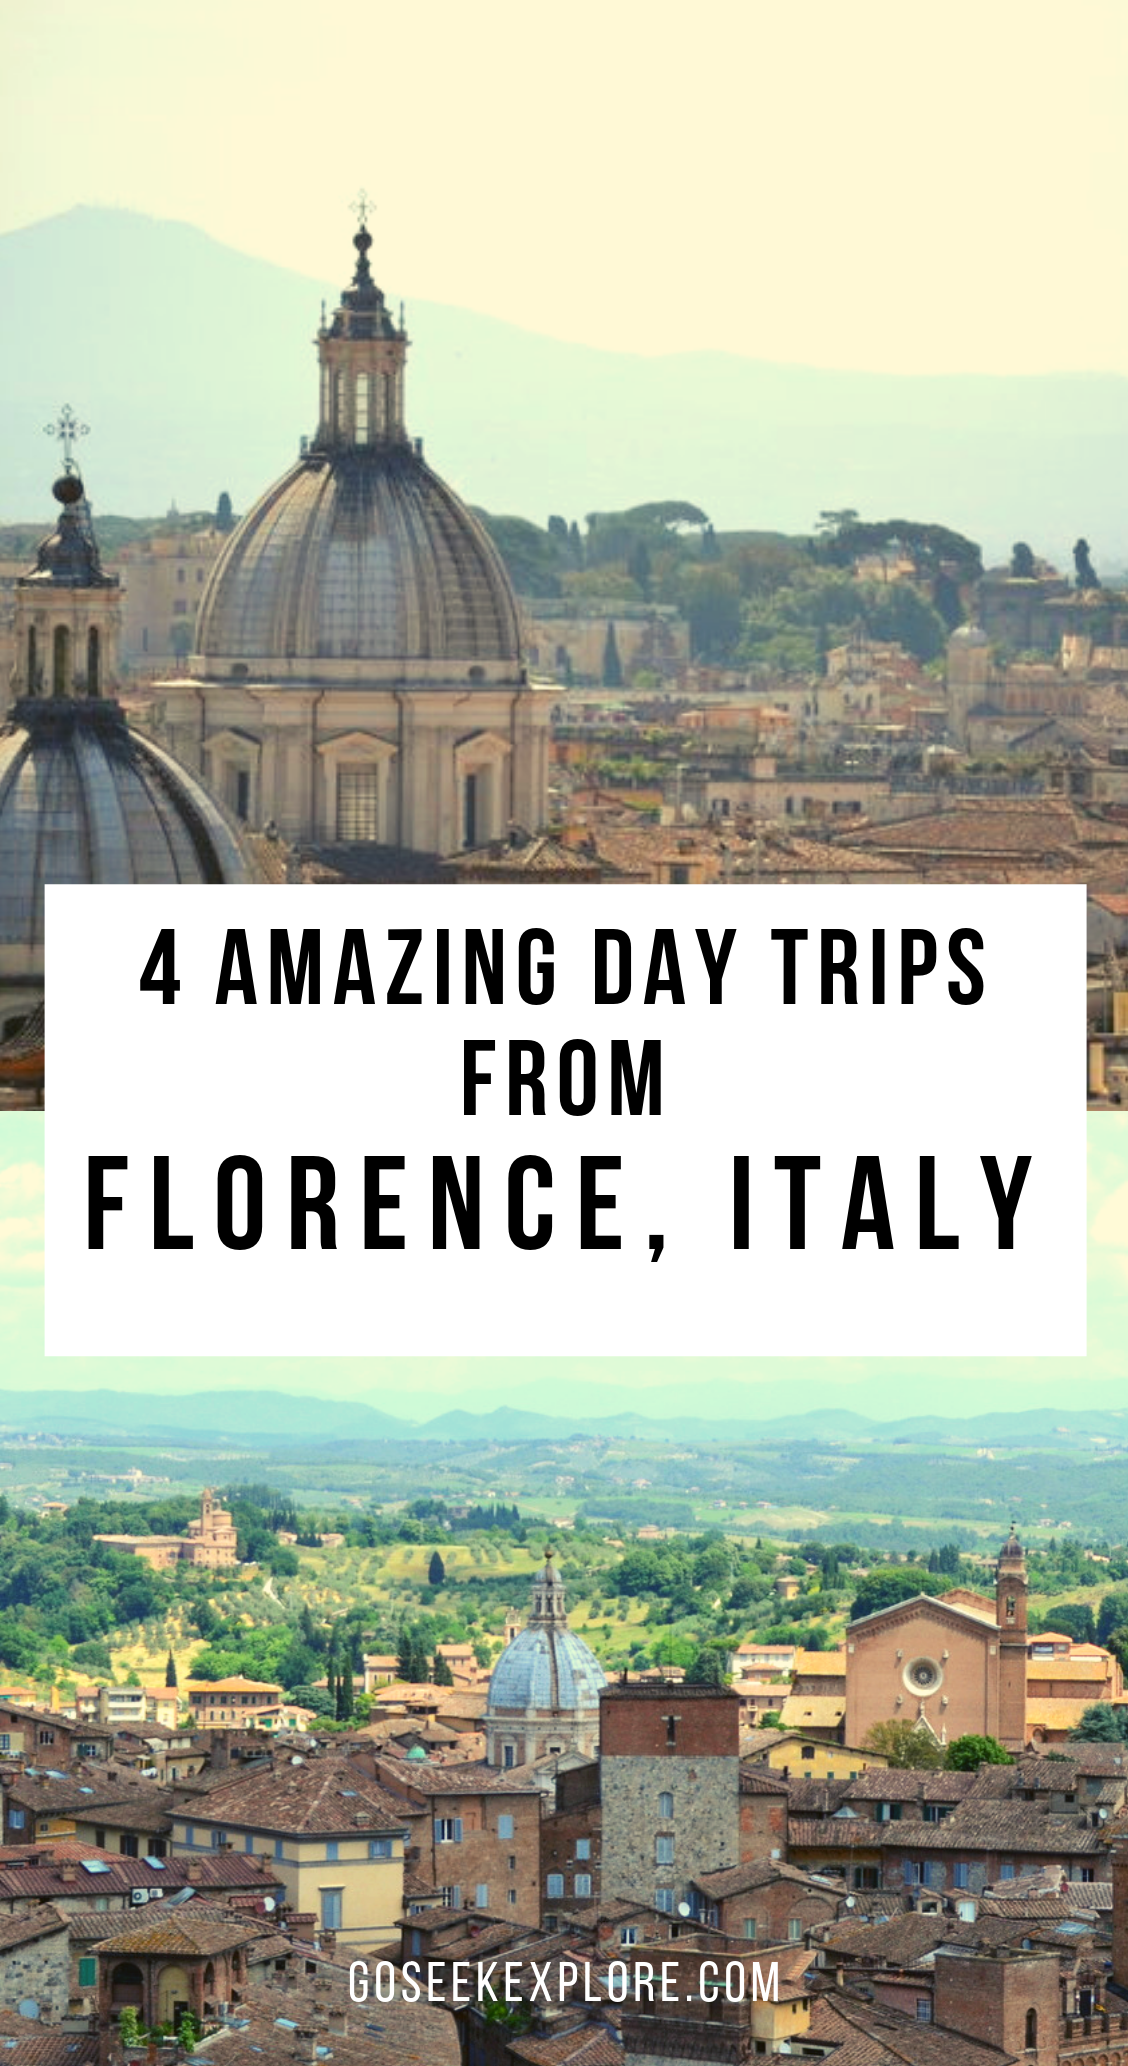 4 Amazing Day Trips From Florence, Italy! From Tuscany to Umbria, coastal towns and even Rome, there are many lovely parts of Italy you can visit for a day trip if your travels are based in Florence. This article also includes a bunch of helpful guides and resources for traveling Italy! #italy #travel #traveltips #europetravel #eurotrip #europe #italytravel #italyvacation